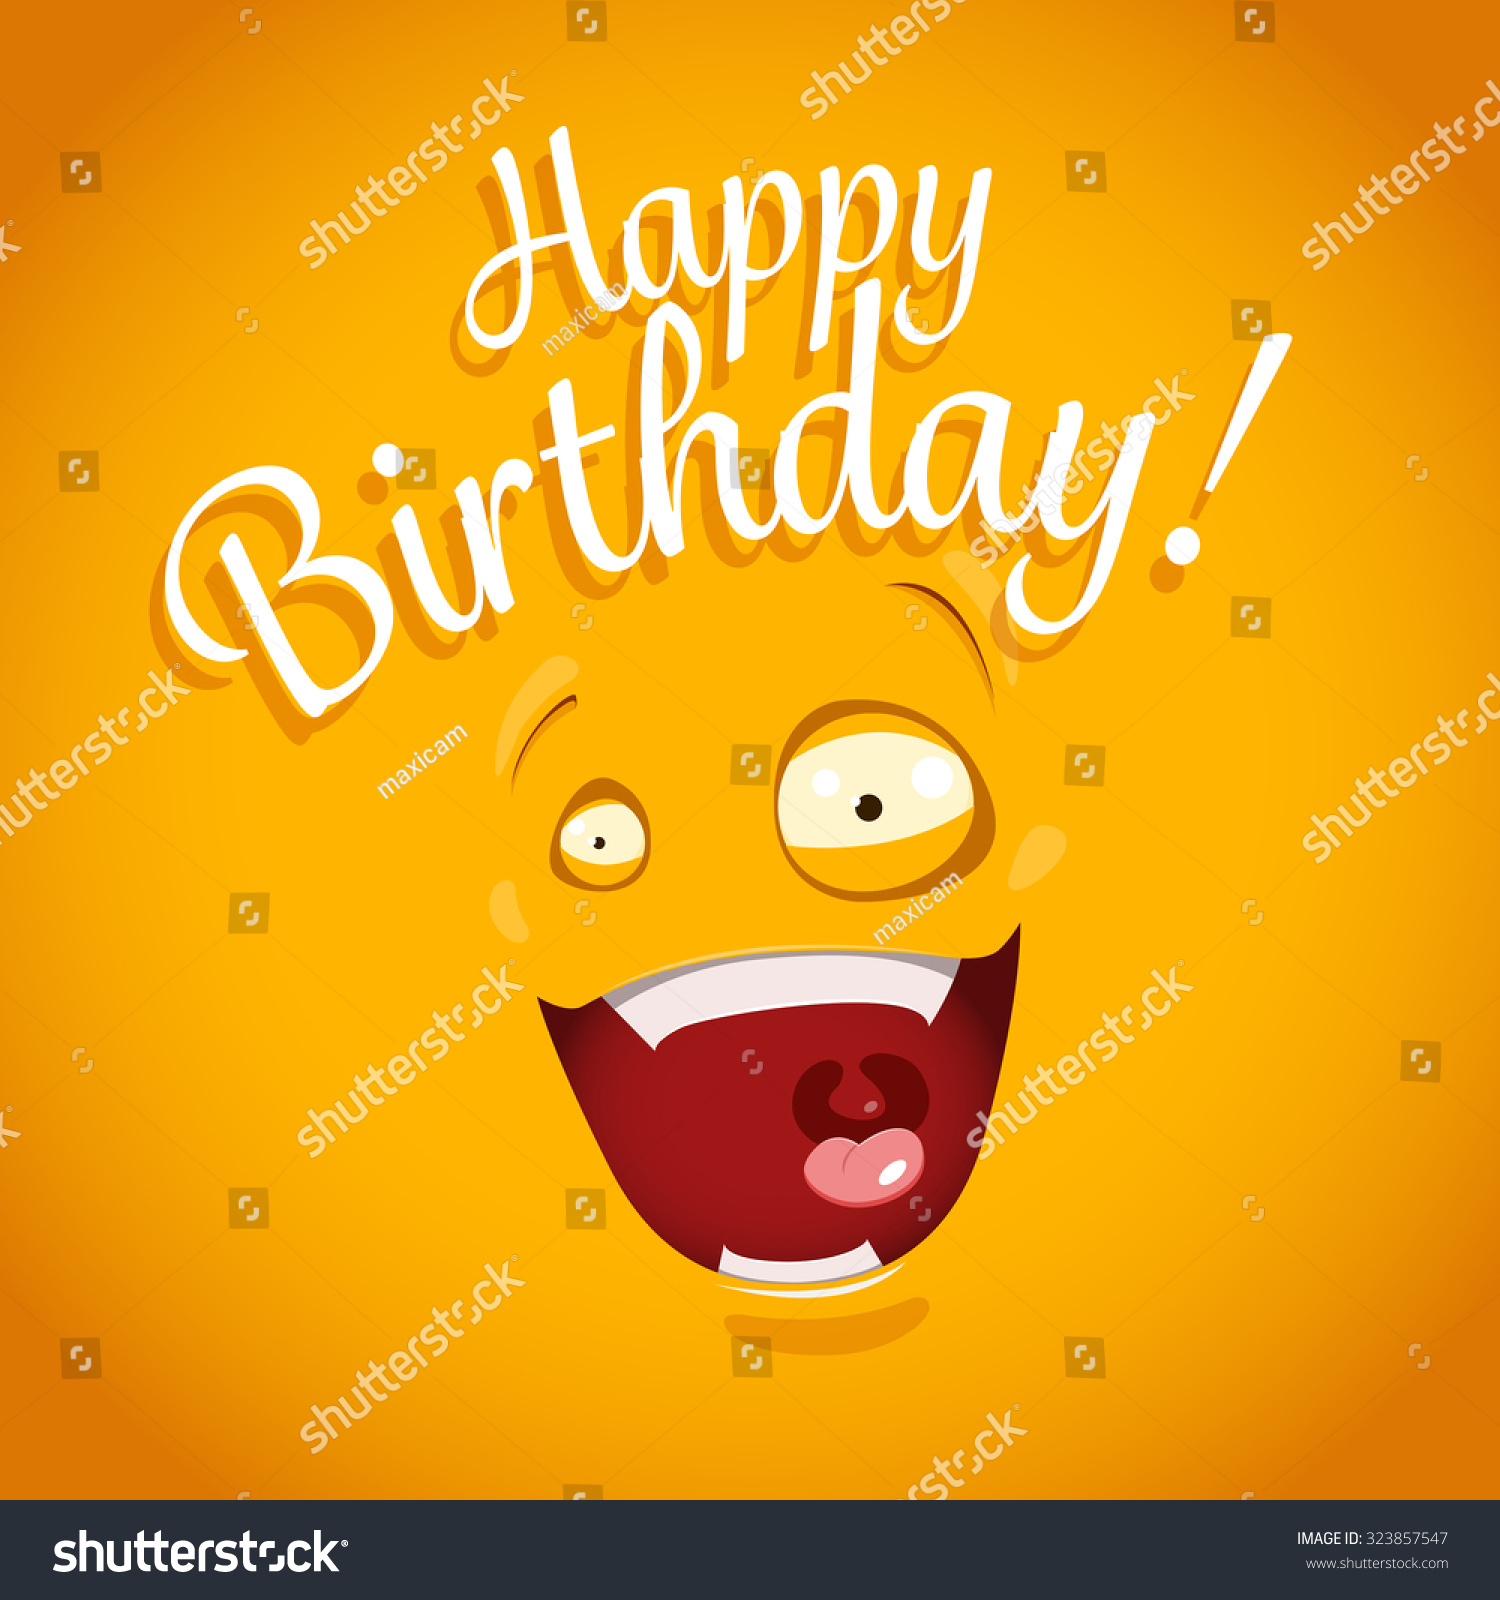 Happy Birthday card with funny cartoon emotion face